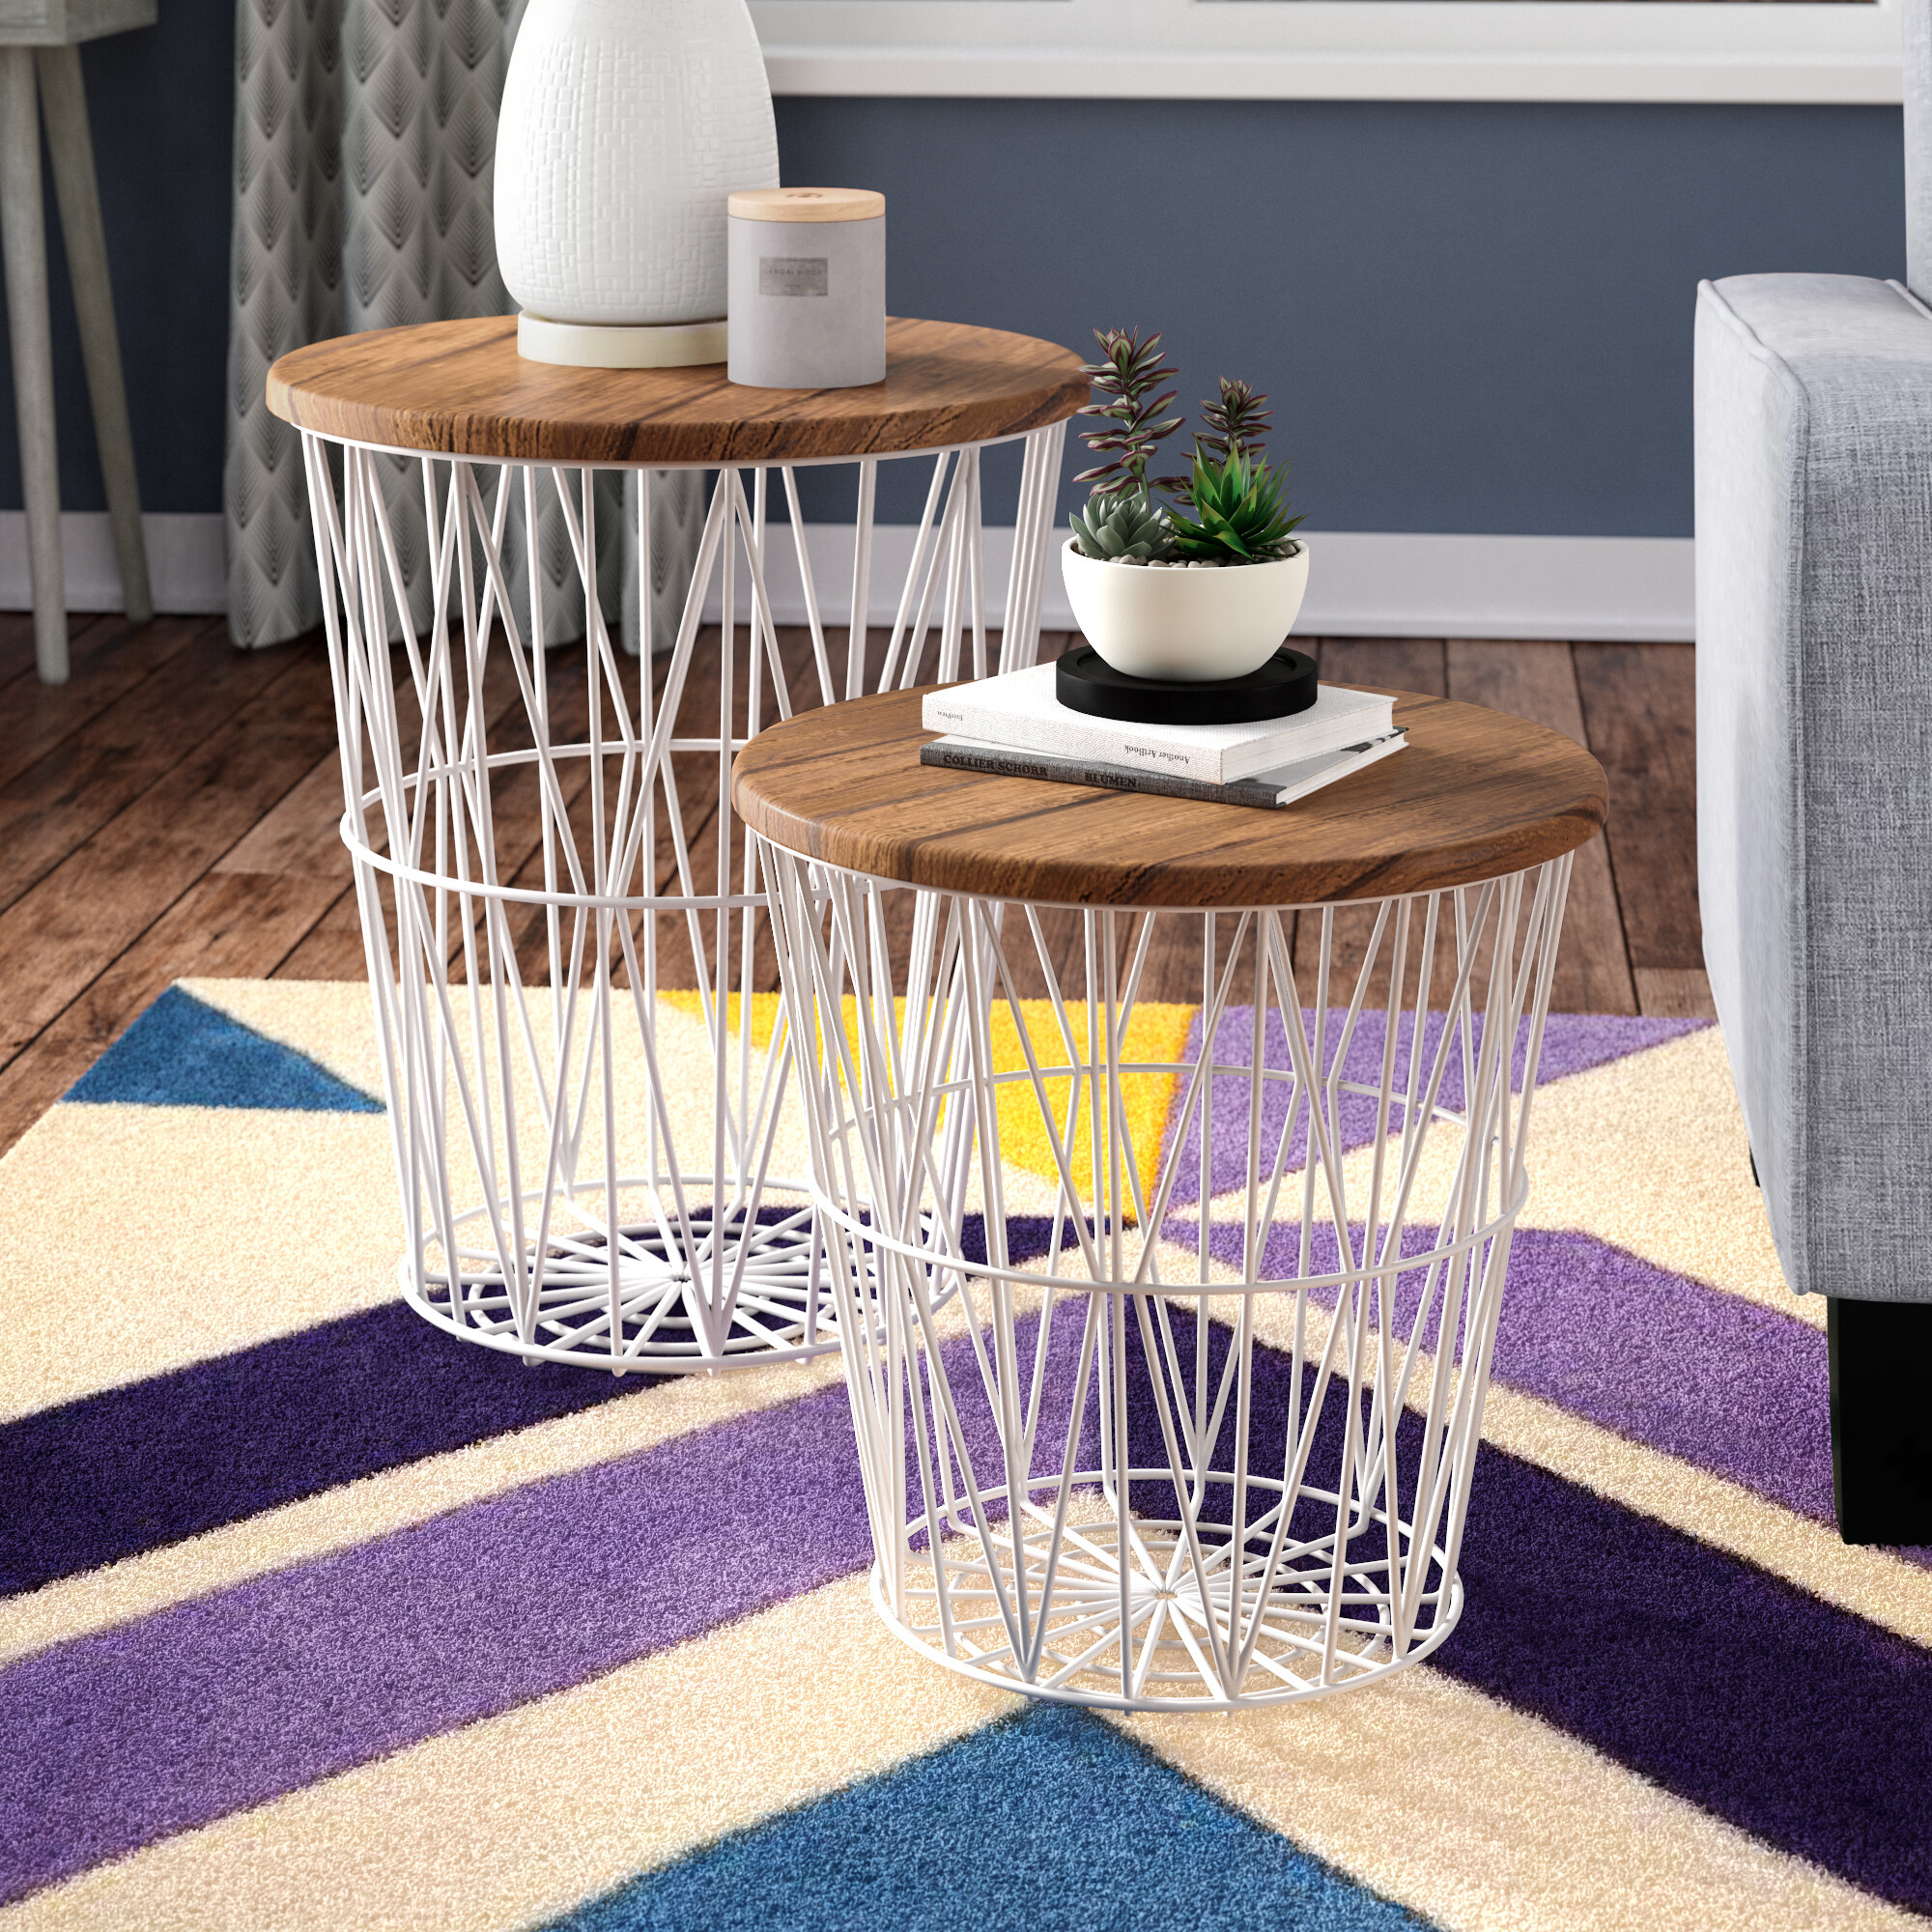 Incredible Mcgonigal 2 Piece Nesting Tables Squirreltailoven Fun Painted Chair Ideas Images Squirreltailovenorg